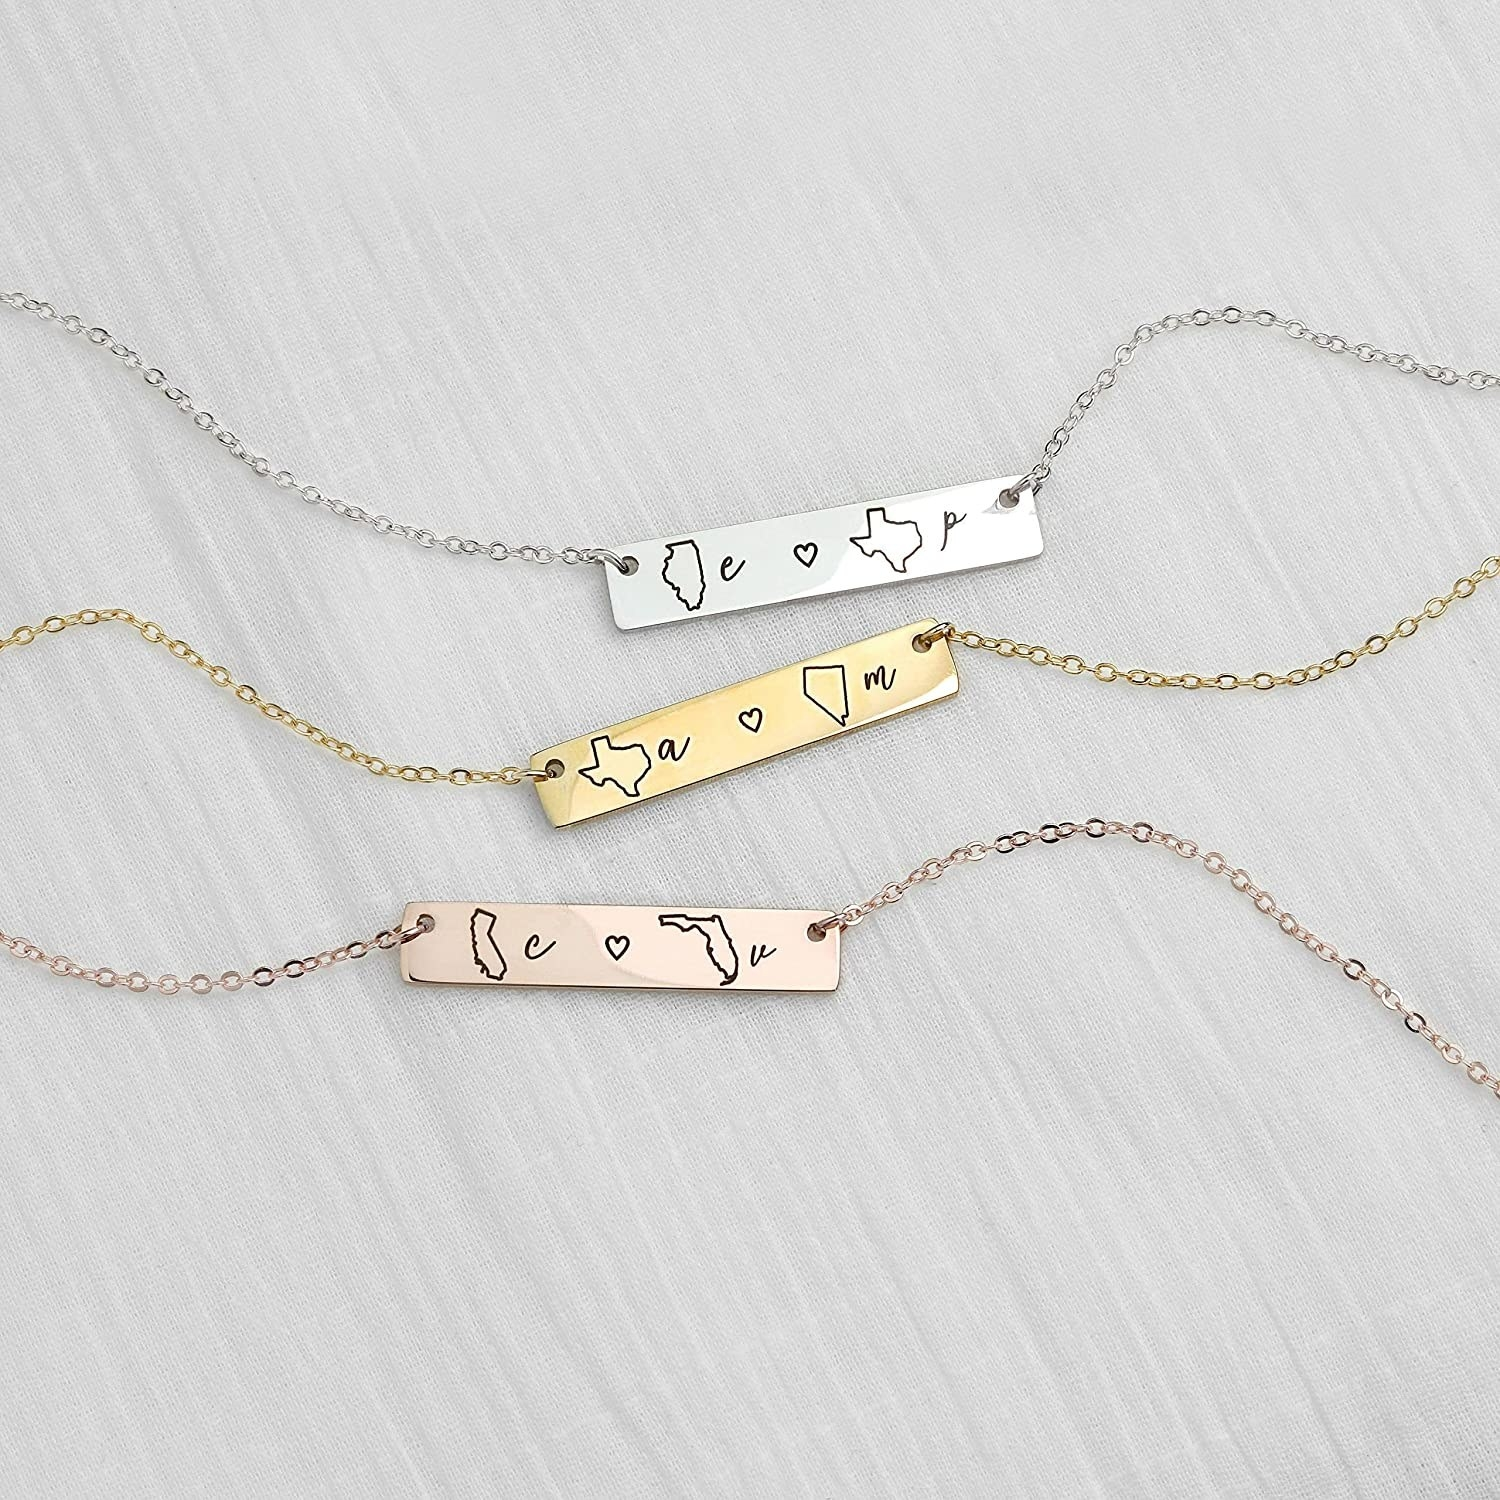 Necklaces in silver, gold, and rose gold with a bar that has different letters and state outlines on them